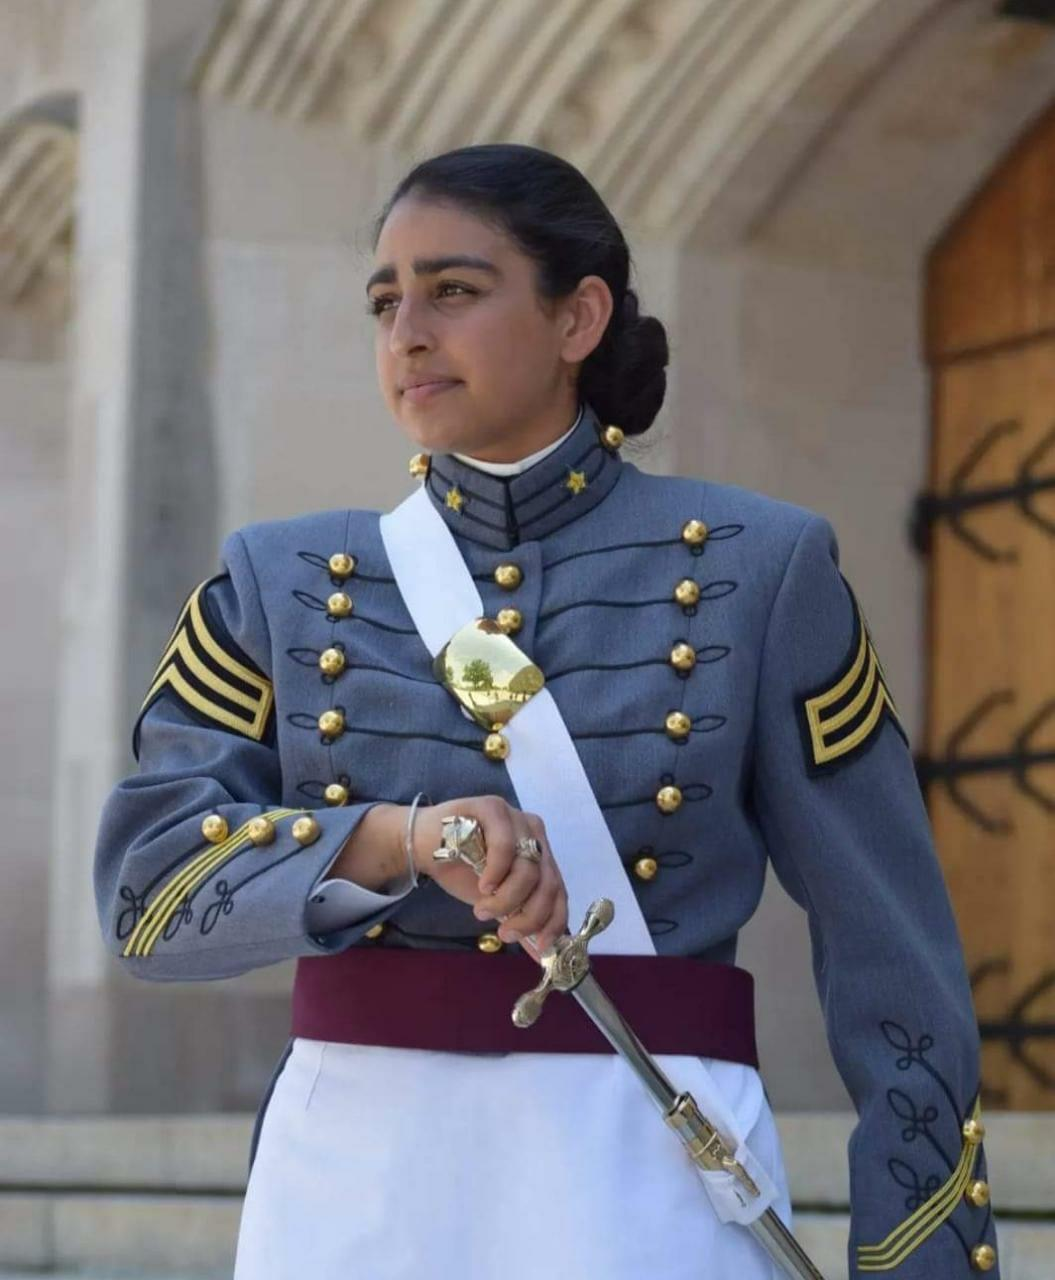 Anmol Narang becomes first observant Sikh to graduate from US Military Academy at West Point